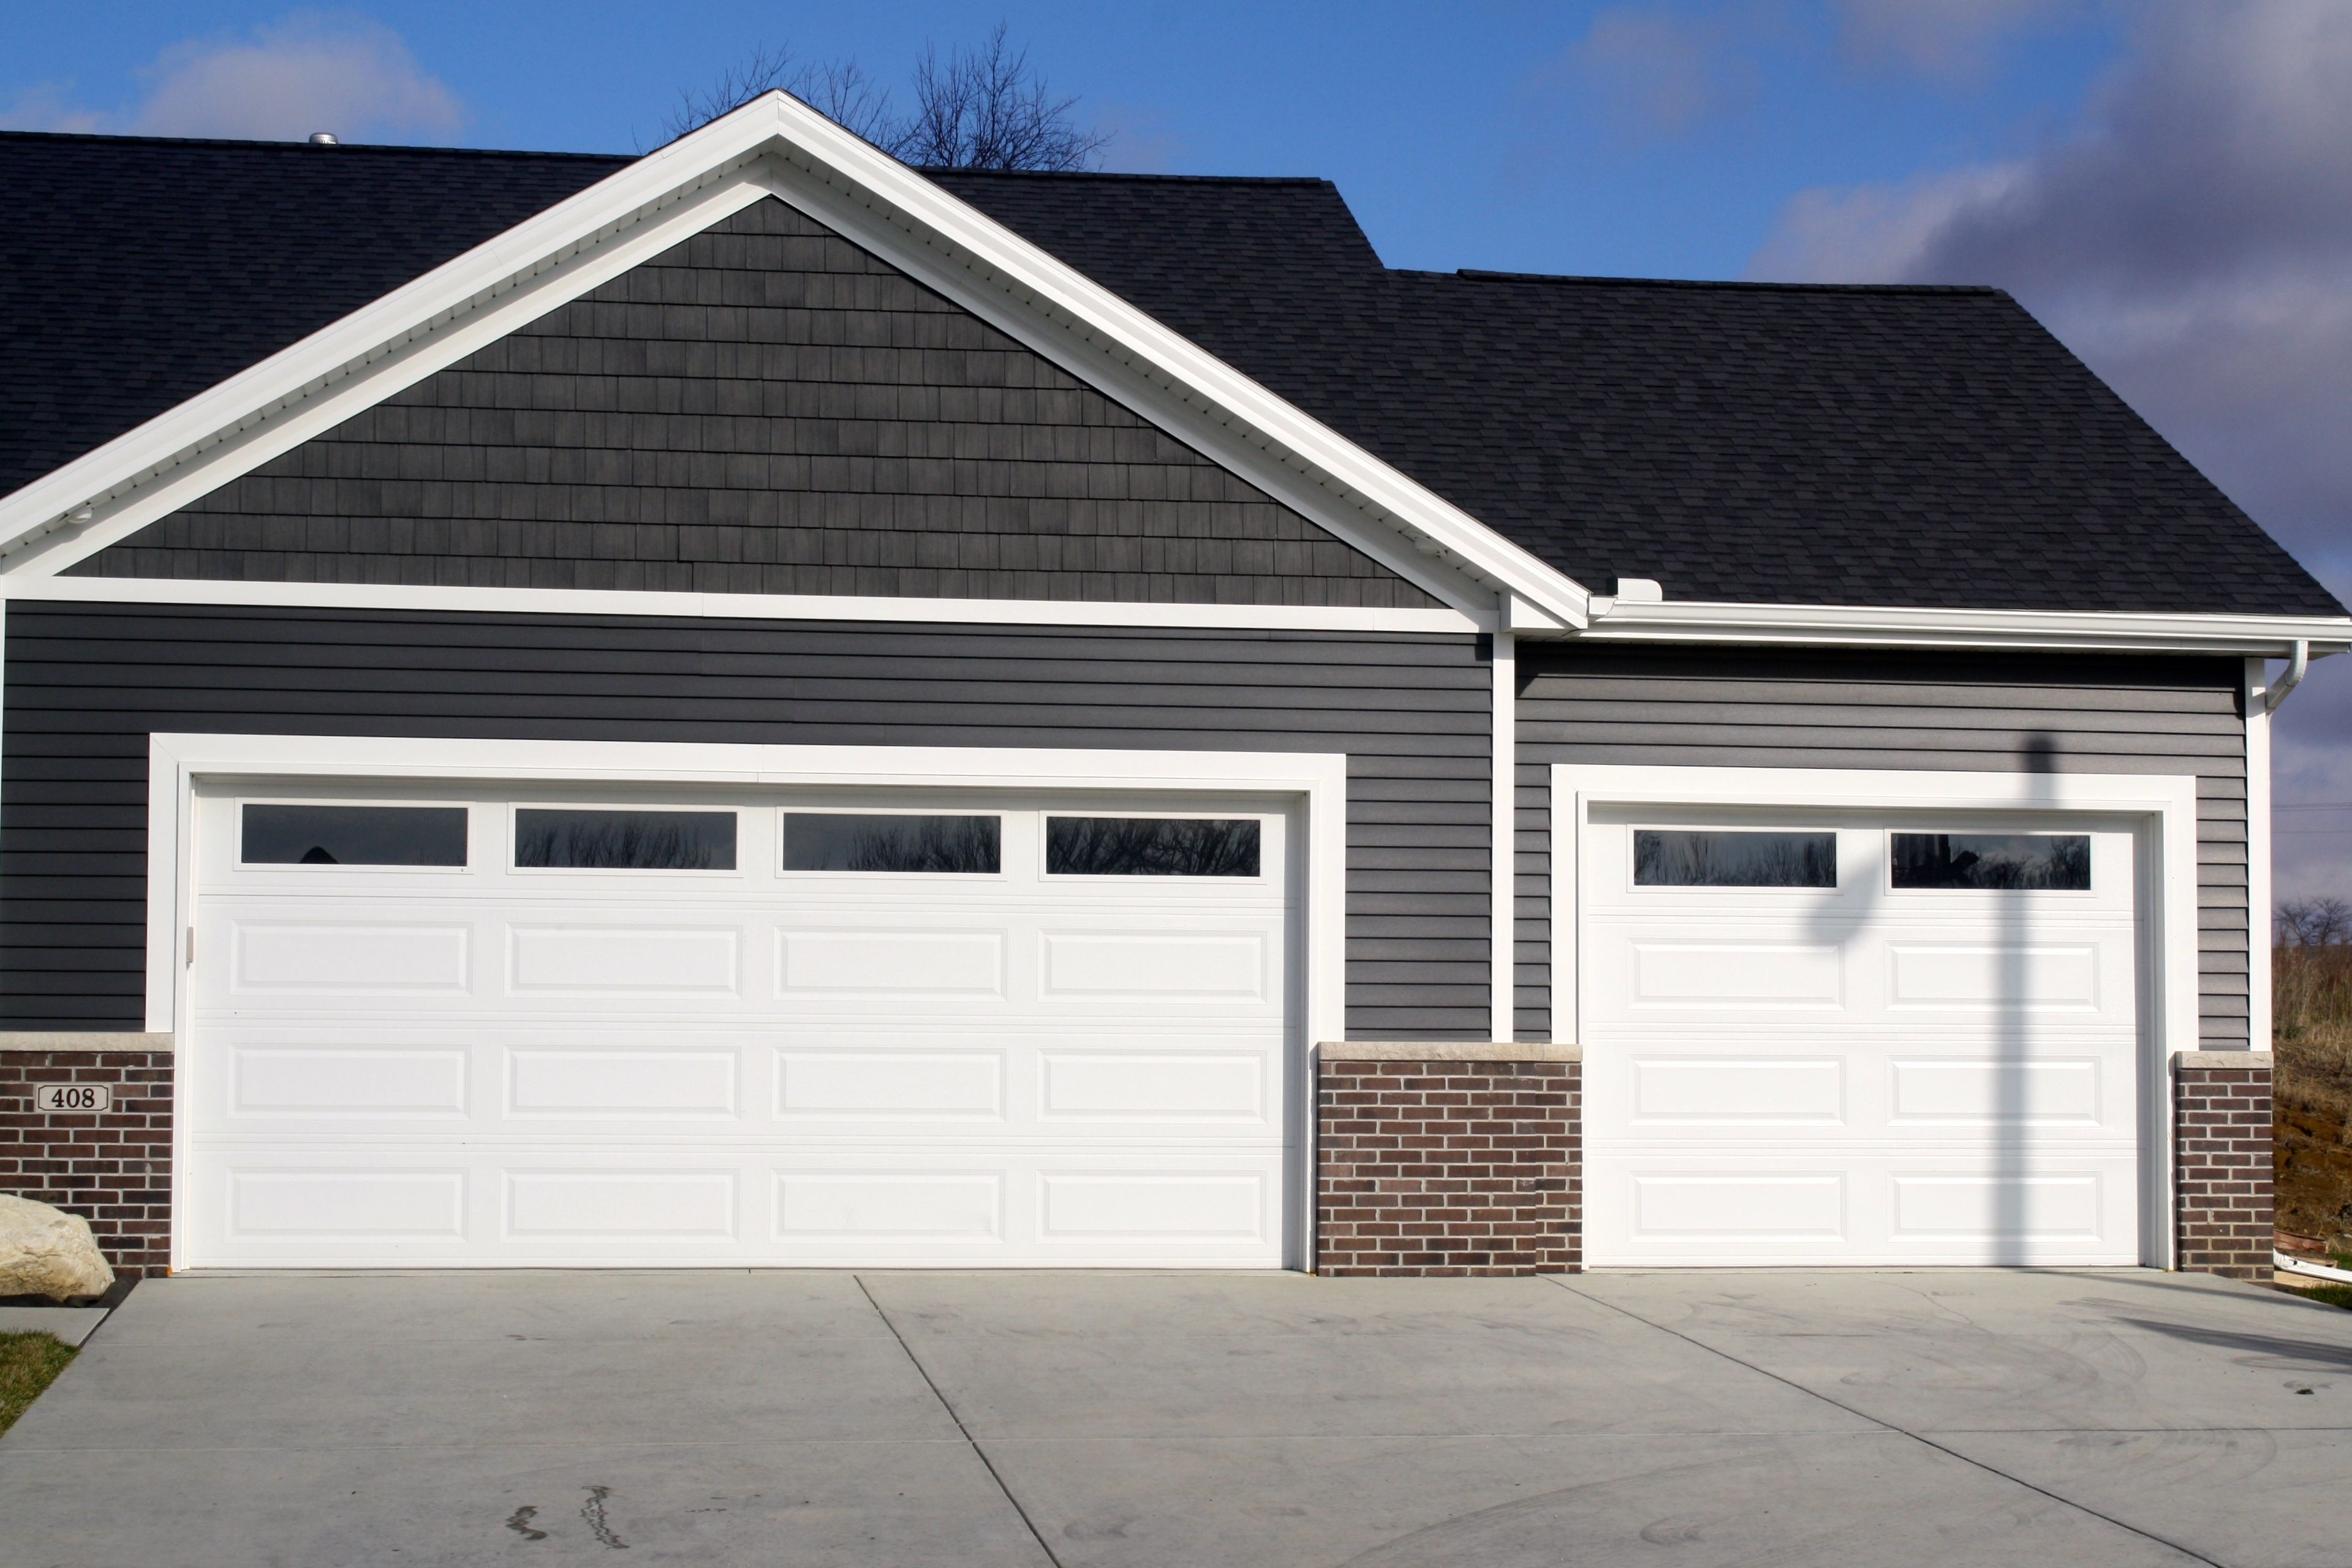 Two White Garage Doors With Plain Glass Inserts In Red